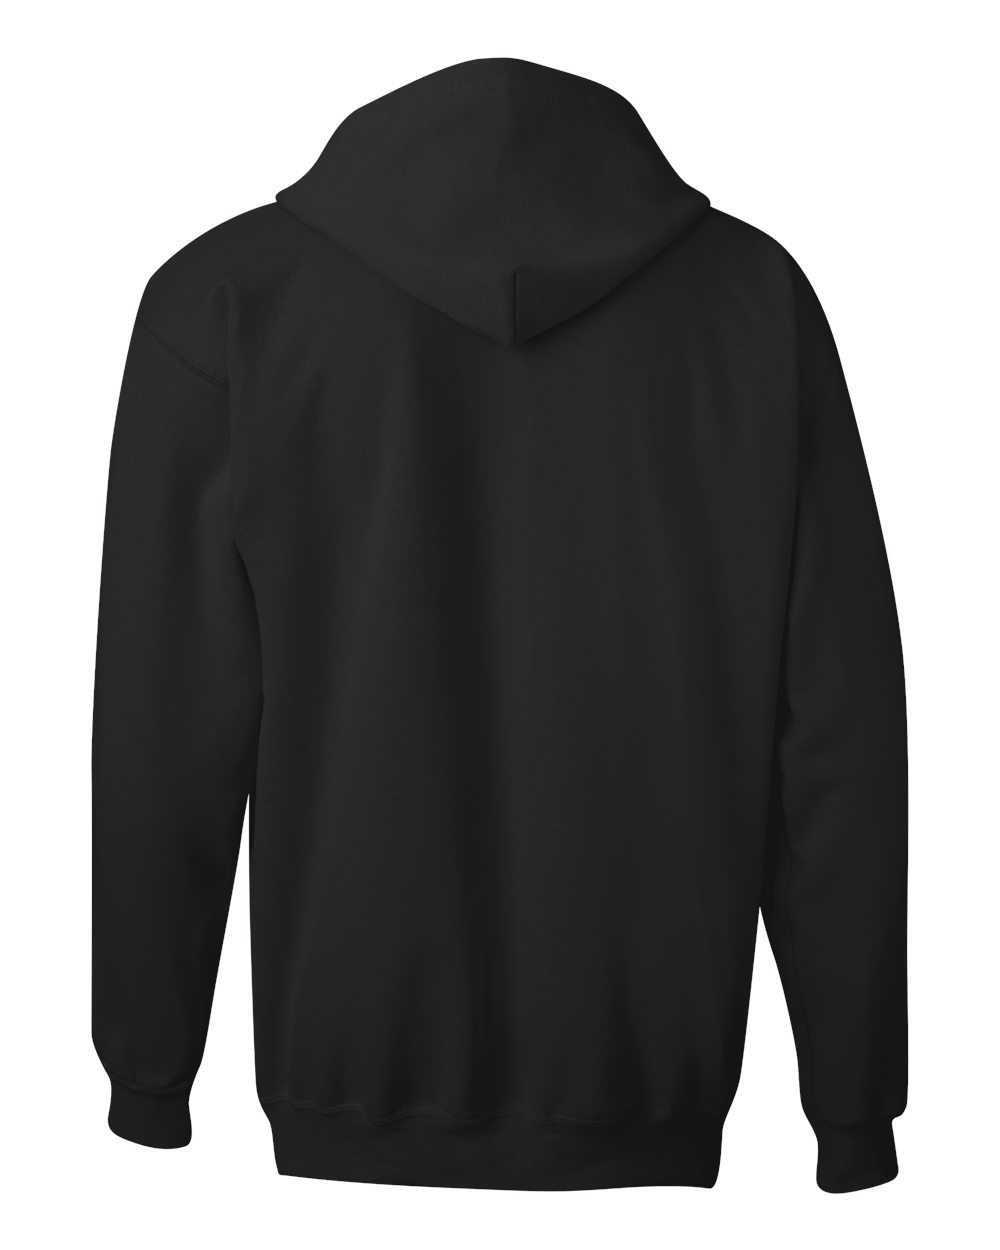 Hanes-Mens-Blank-Ultimate-Cotton-Full-Zip-Hooded-Sweatshirt-F280-up-to-3XL miniature 7